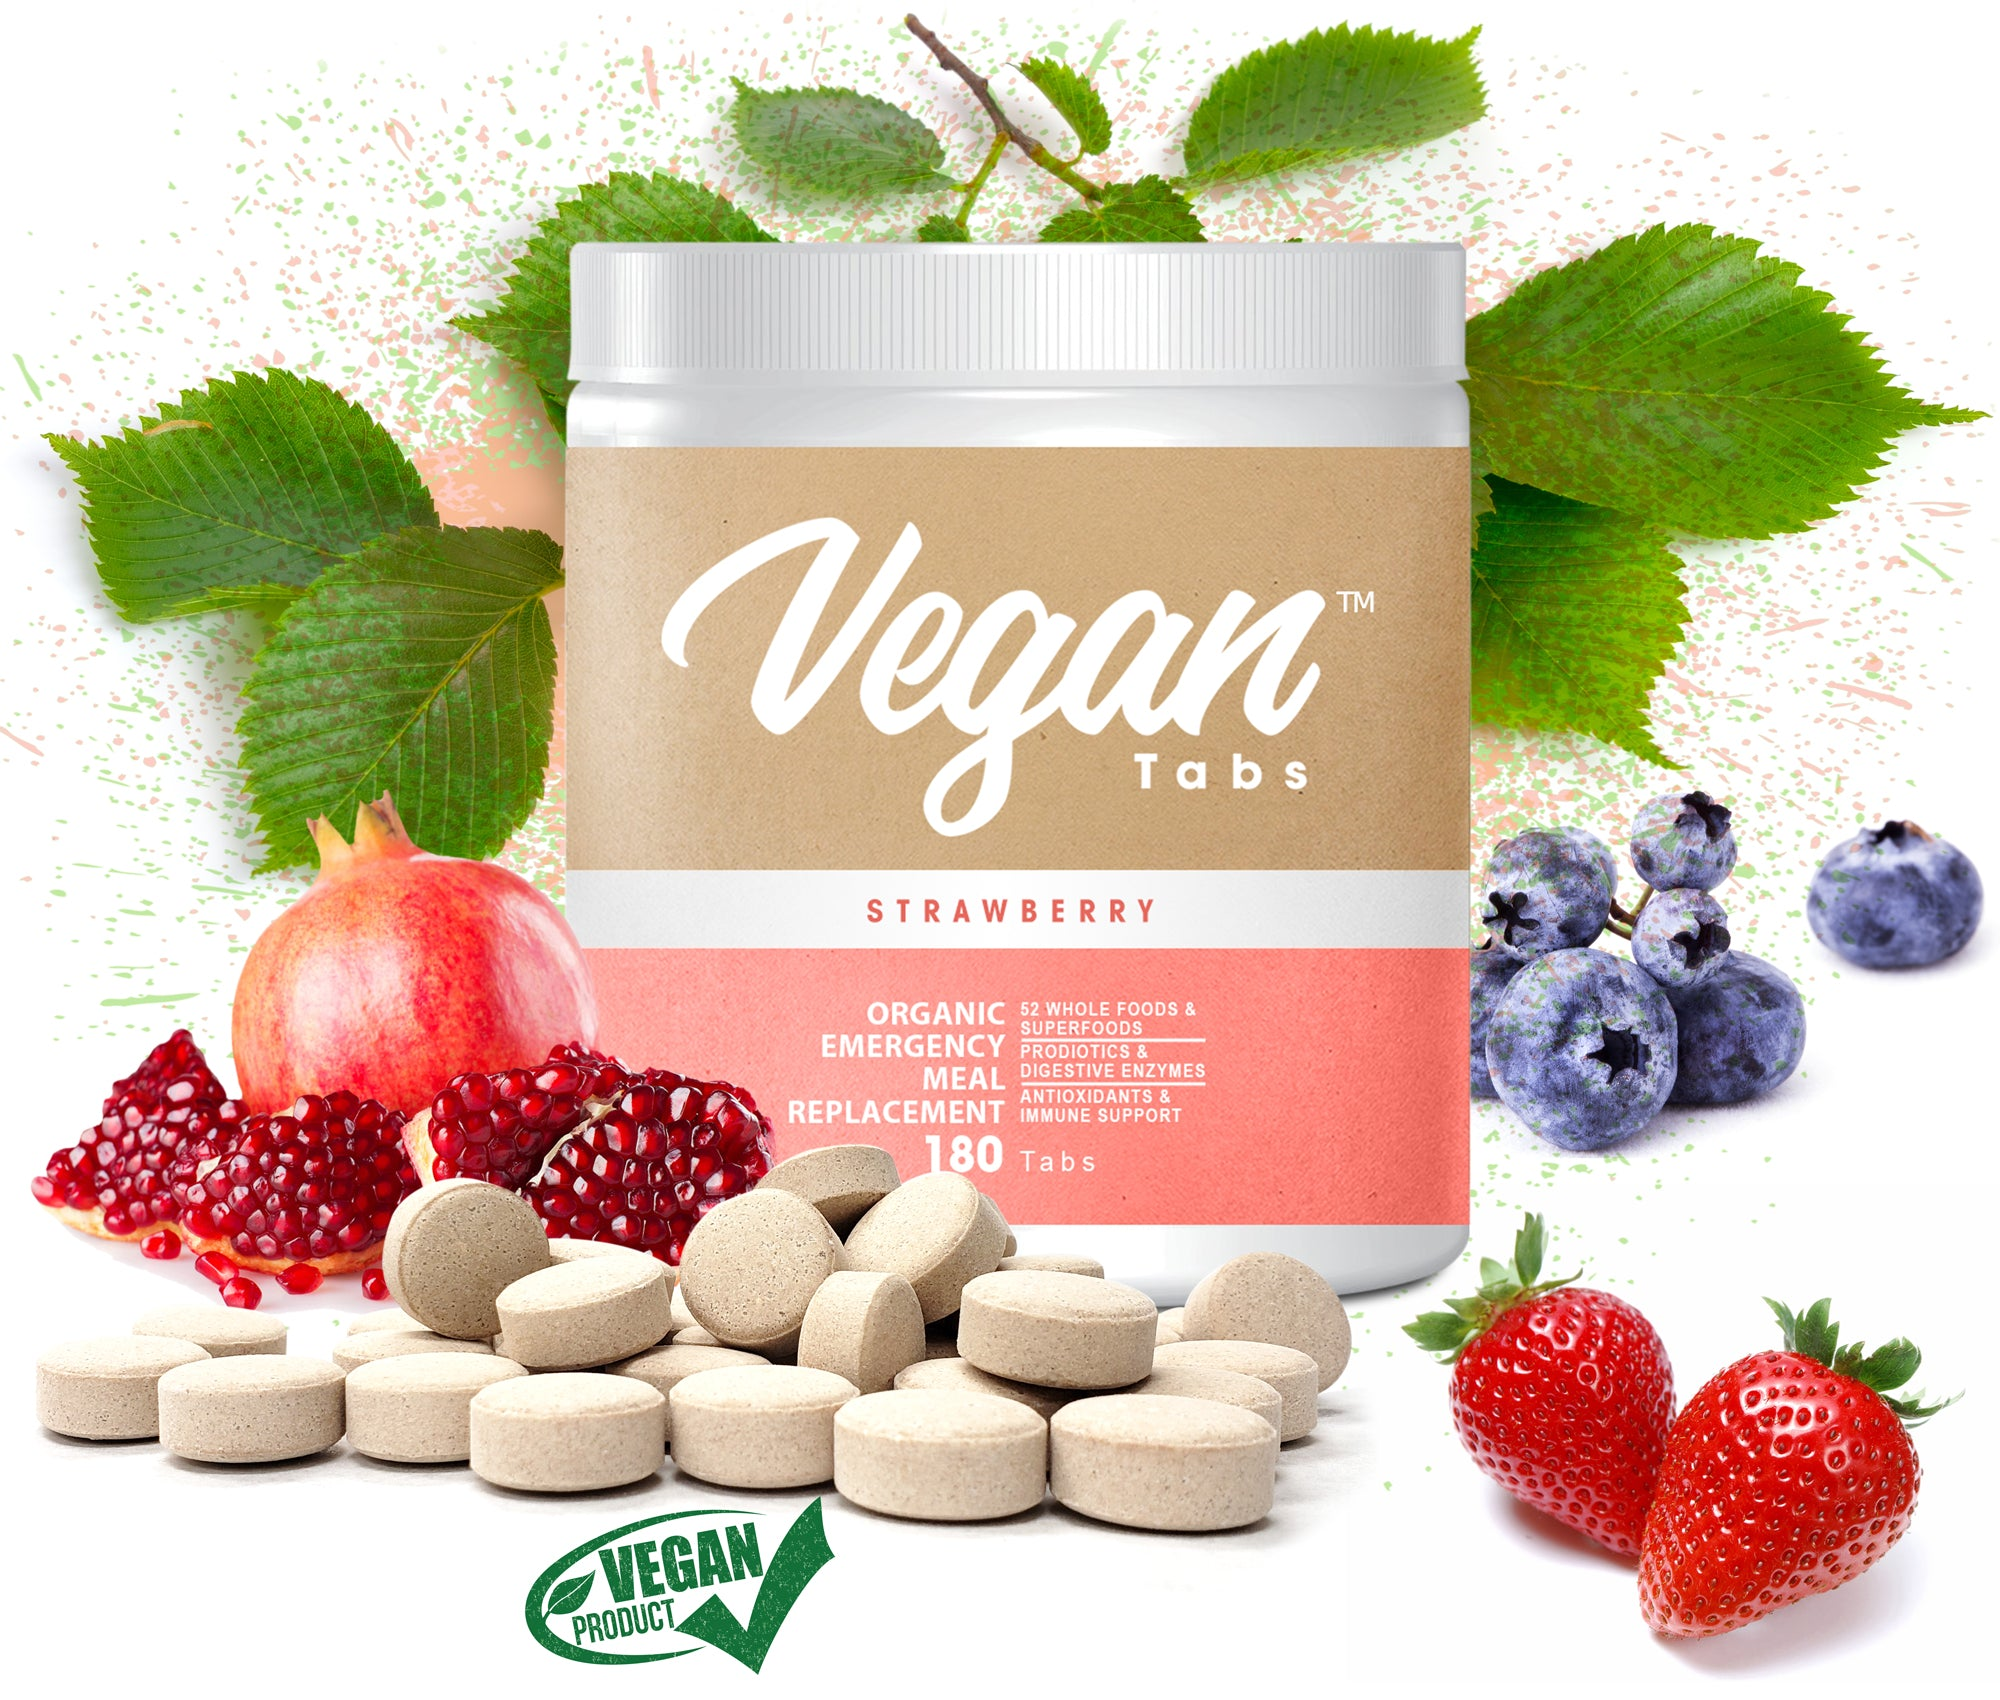 100% Pure Organic Plant-Based Vegan Protein tablets - Easy to Digest, Natural Unflavored, Dairy Free, Gluten Free, Soy Free, Sugar-Free, Non-GMO with BCAA 180 tablets, Strawberry